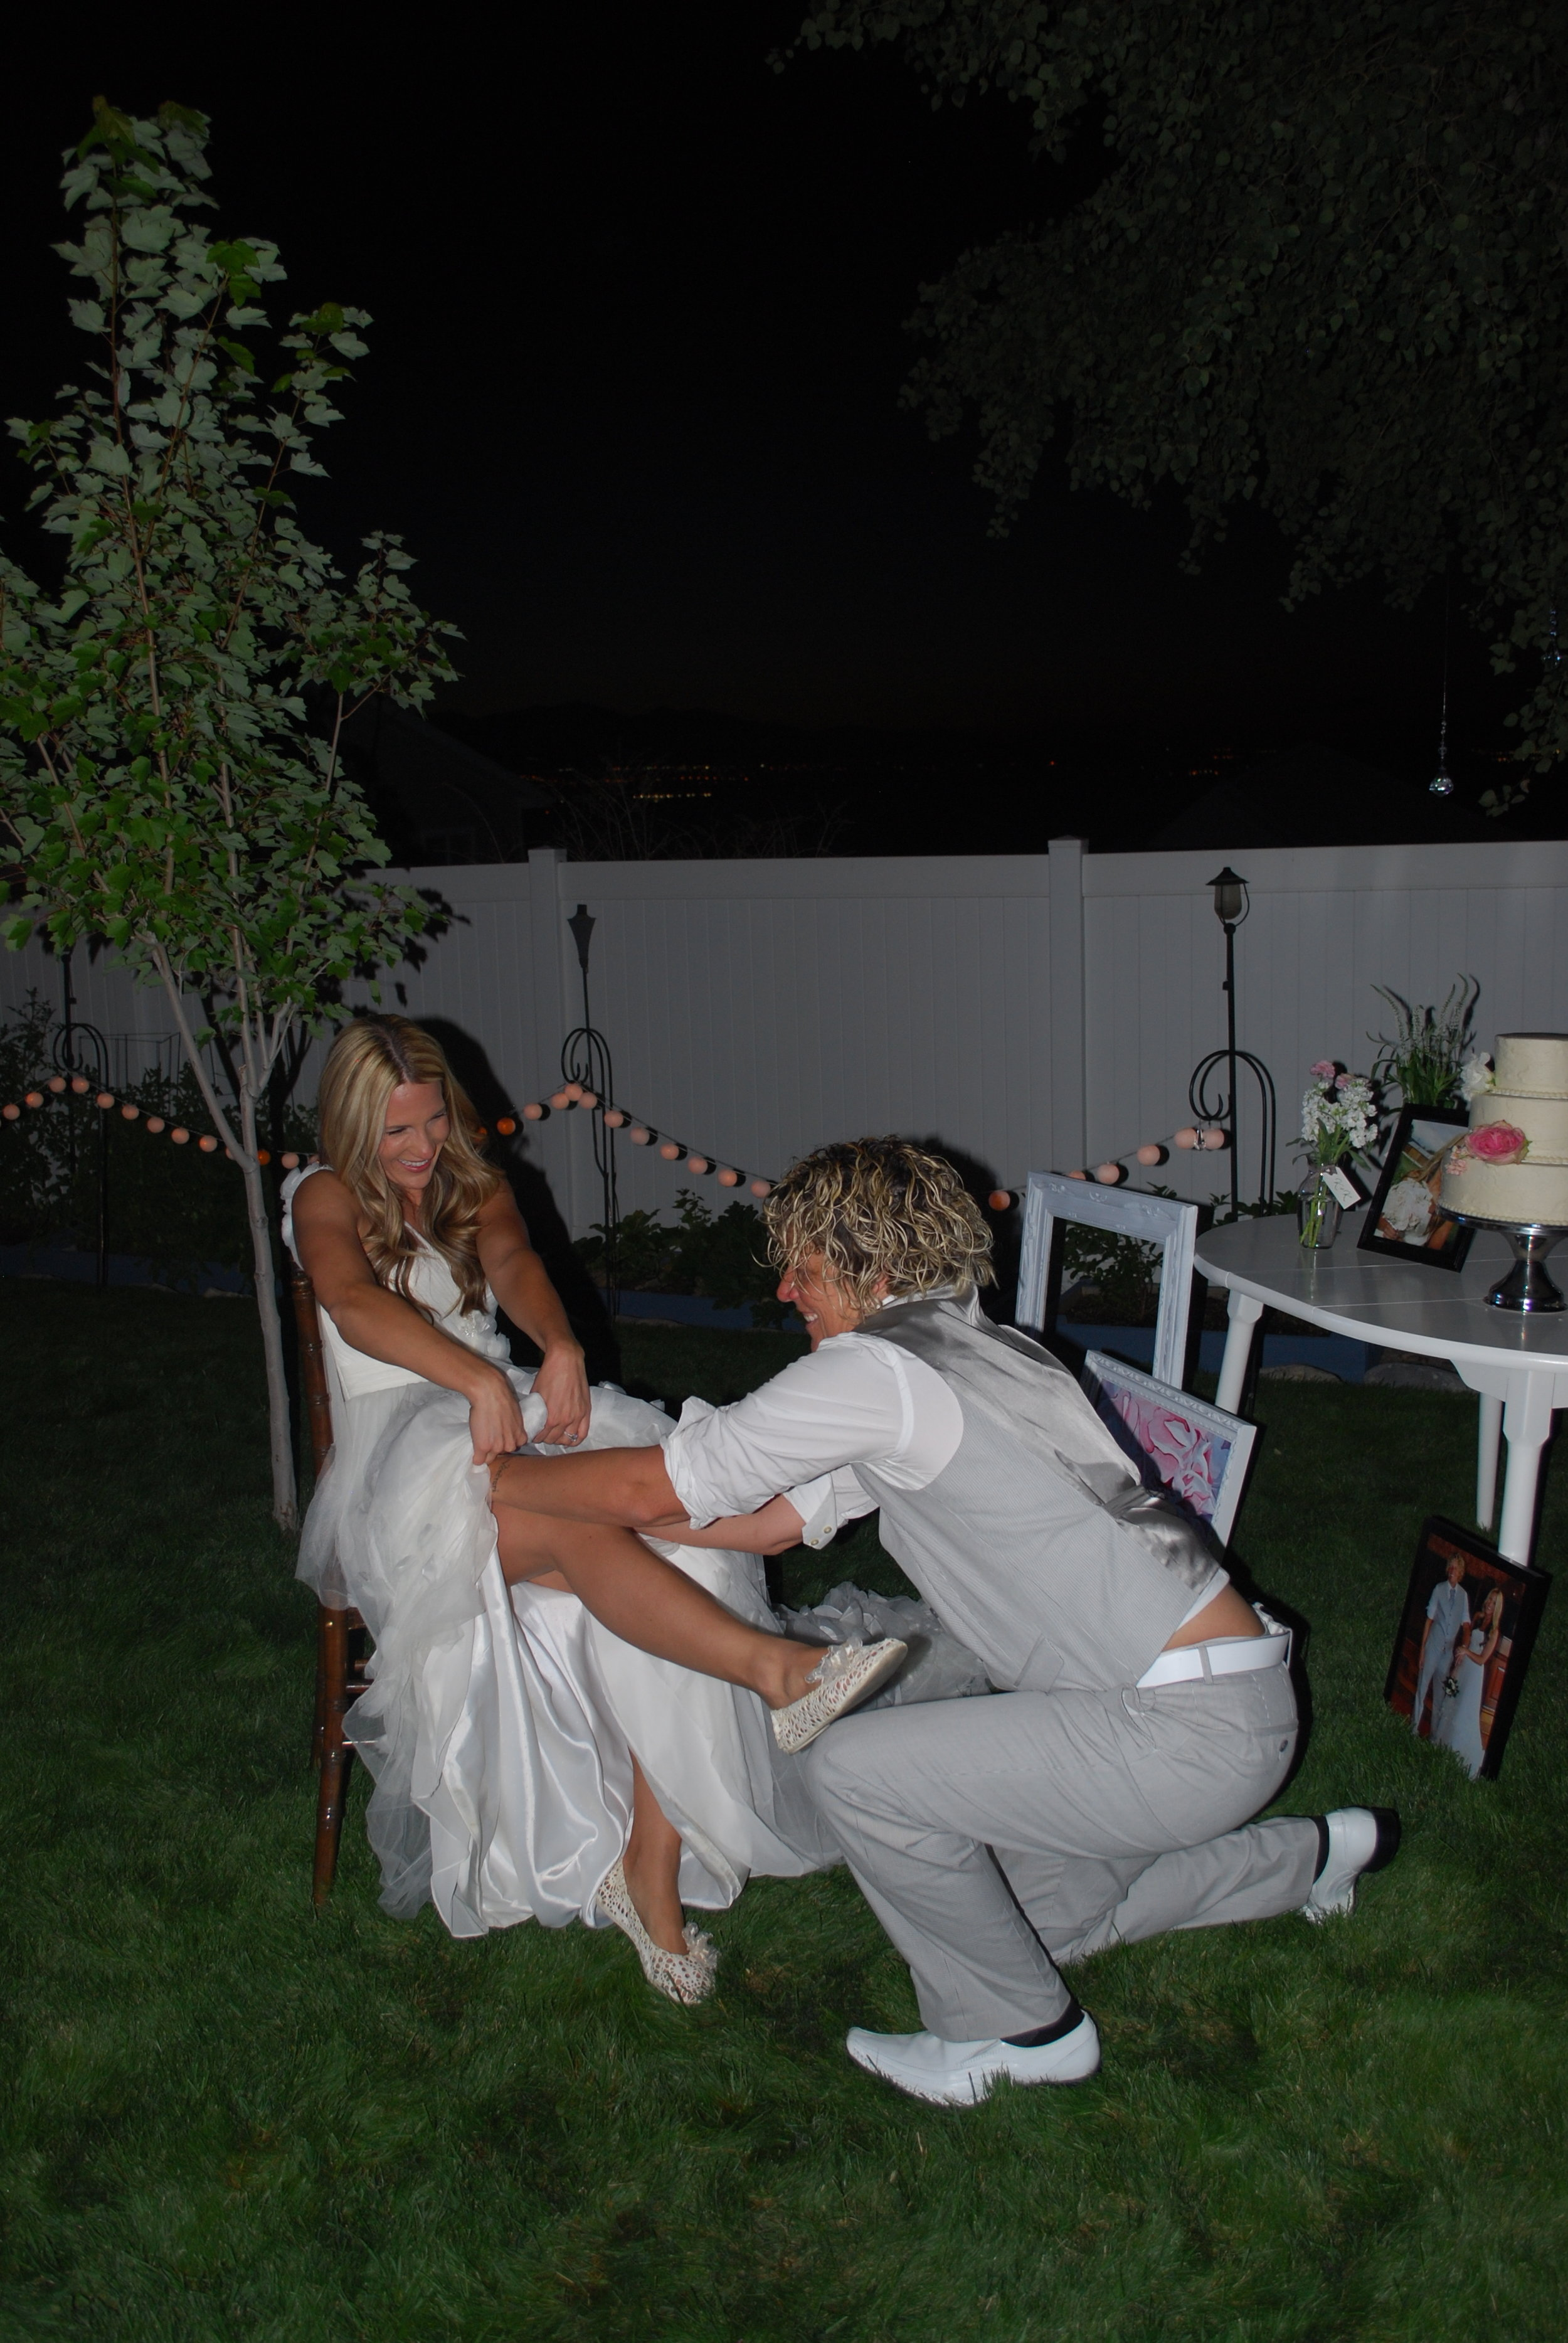 Kris getting the garter belt.I got made fun of because I put it too high, not realizing at the time...Oops! HA!